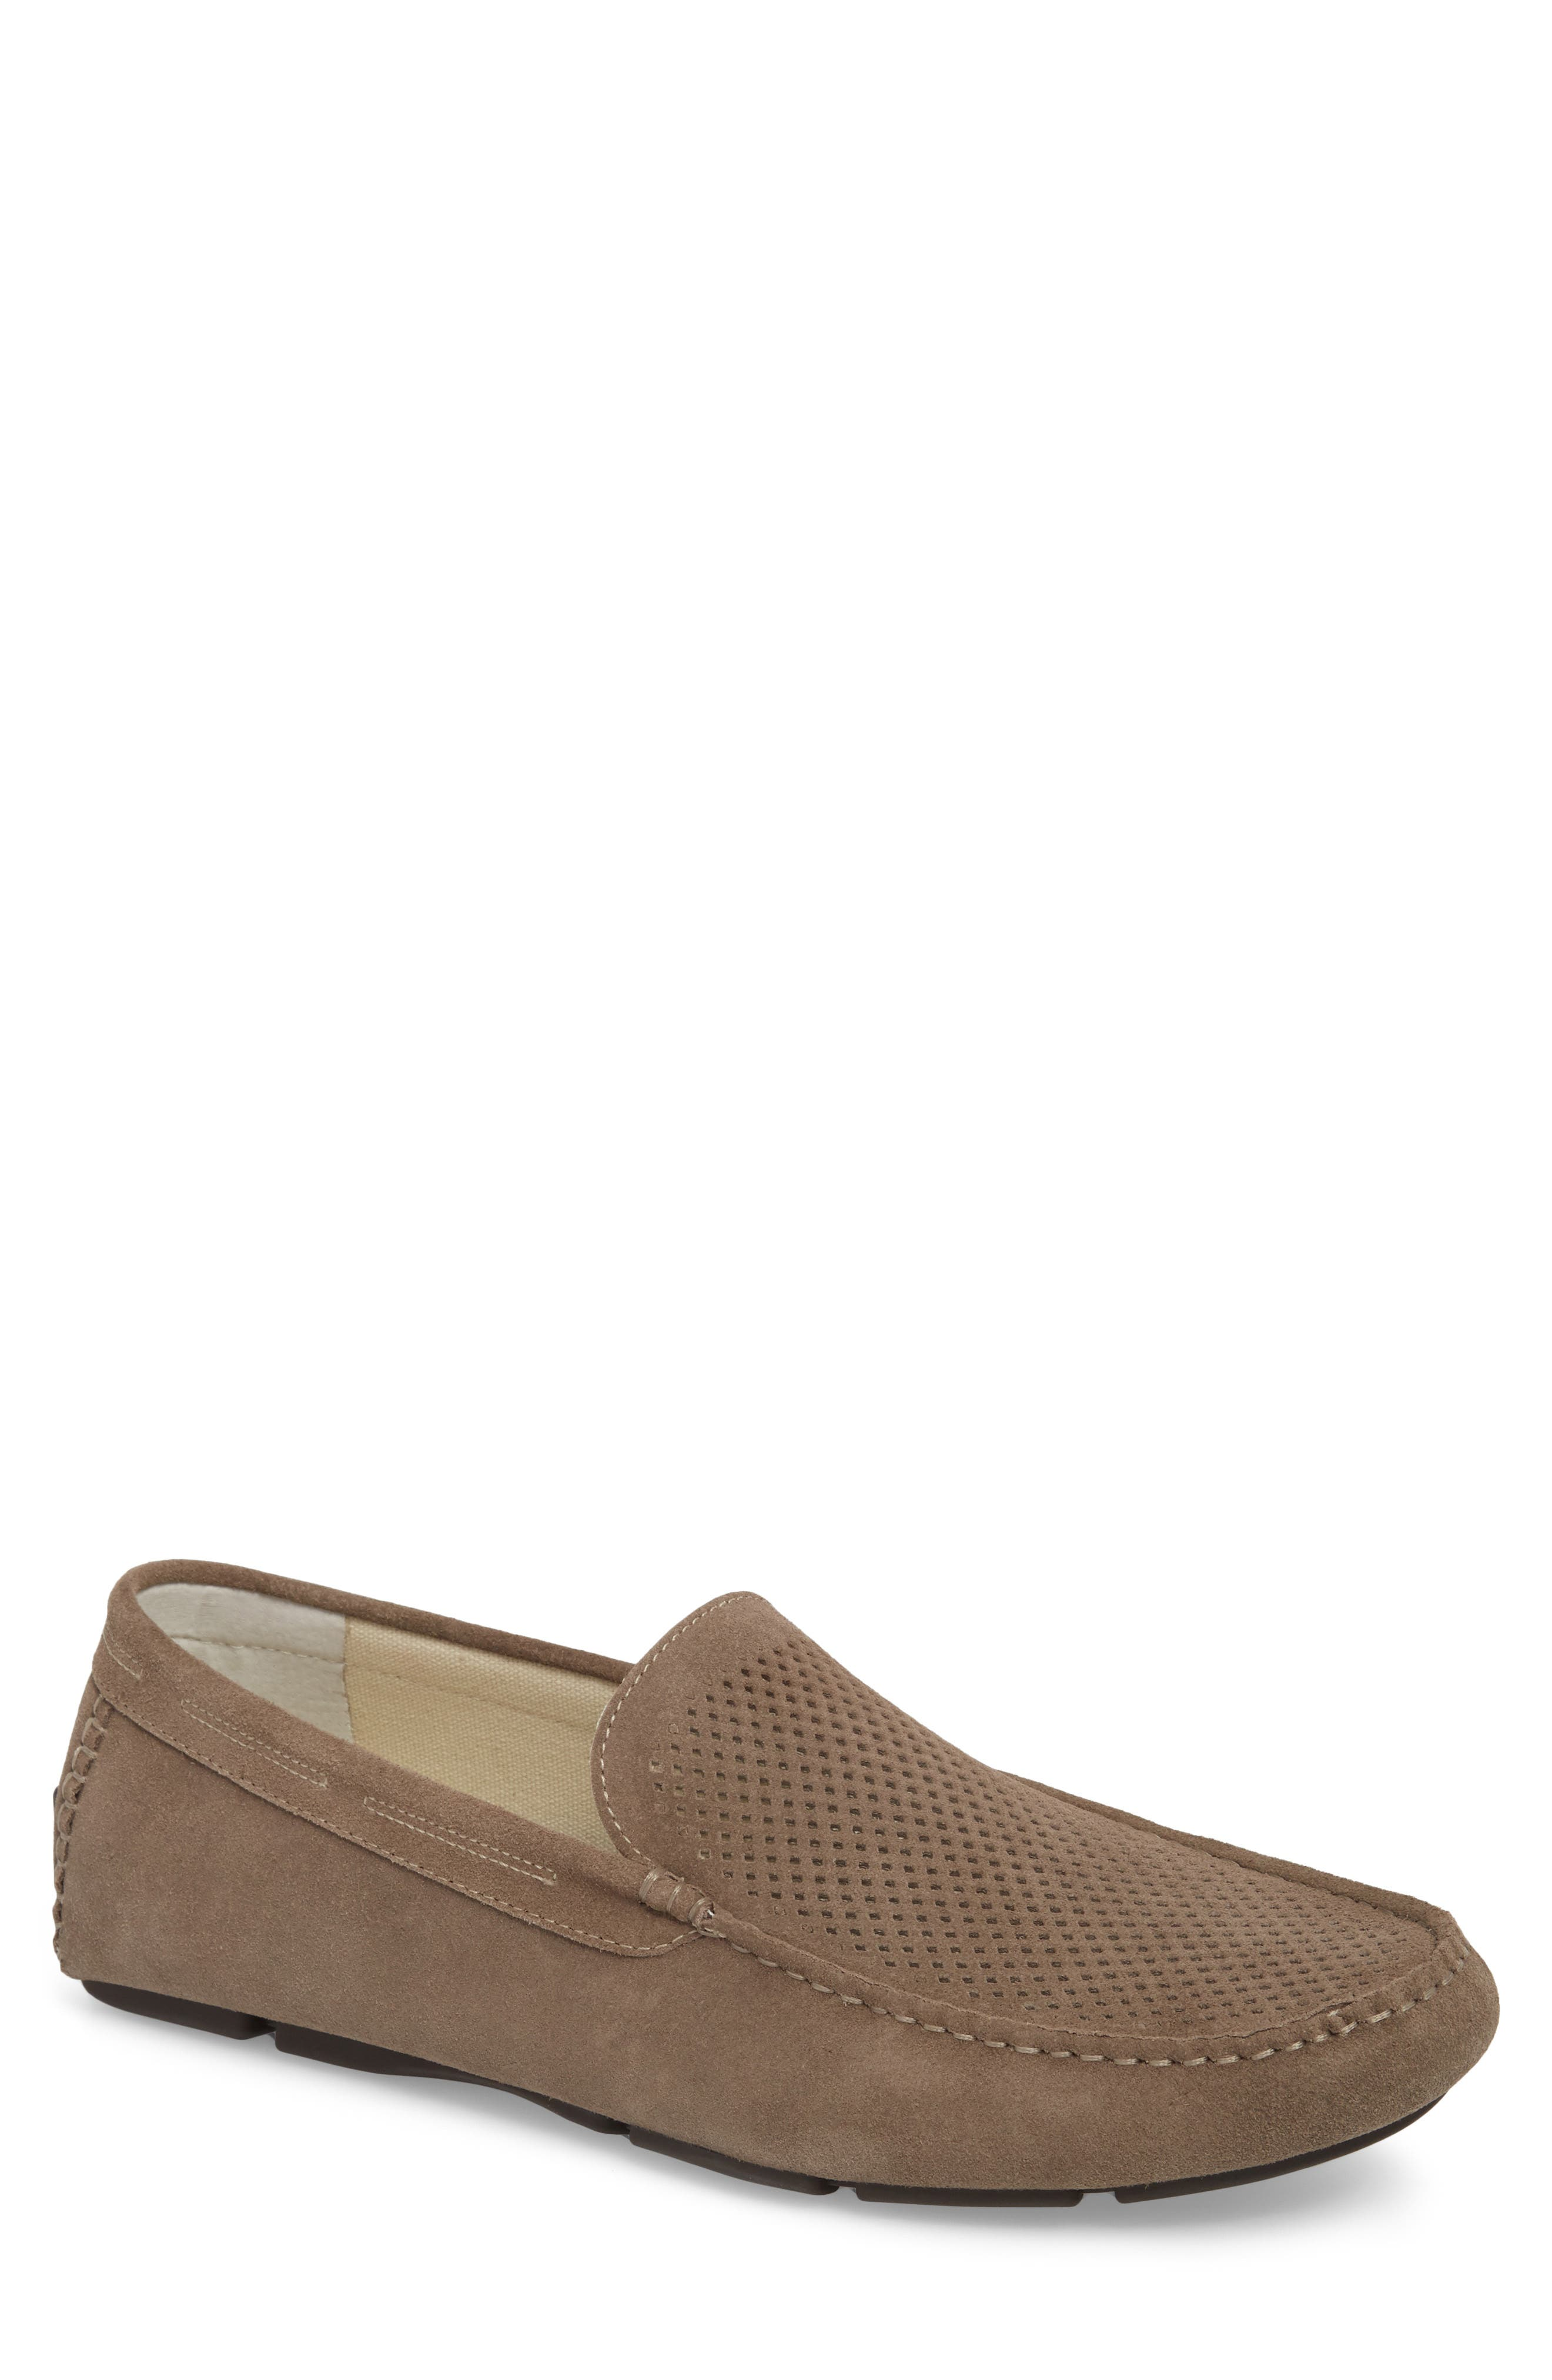 Scottsdale Perforated Driving Moccasin,                             Main thumbnail 1, color,                             Grey Suede